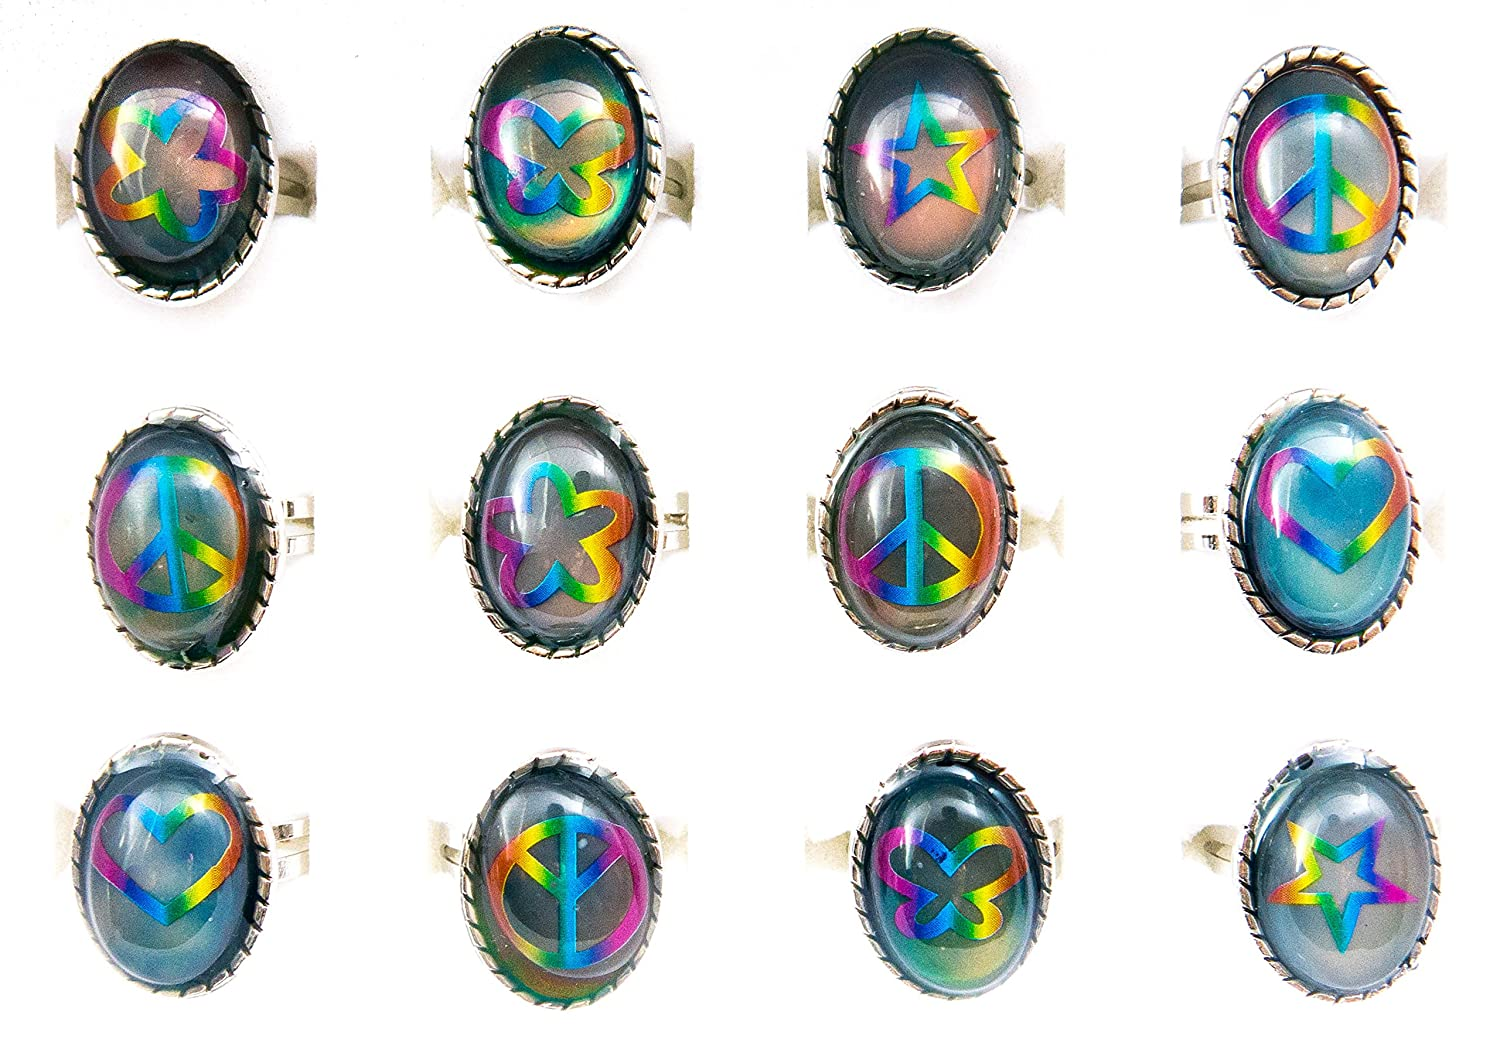 Mood Rings for Women, Girls, Teens, Tweens   12 pieces Color Changing Assorted Motifs Oval Tie-Dye Mood Ring Tray   Great Party Favors Fashion Jewelry by Frogsac USA